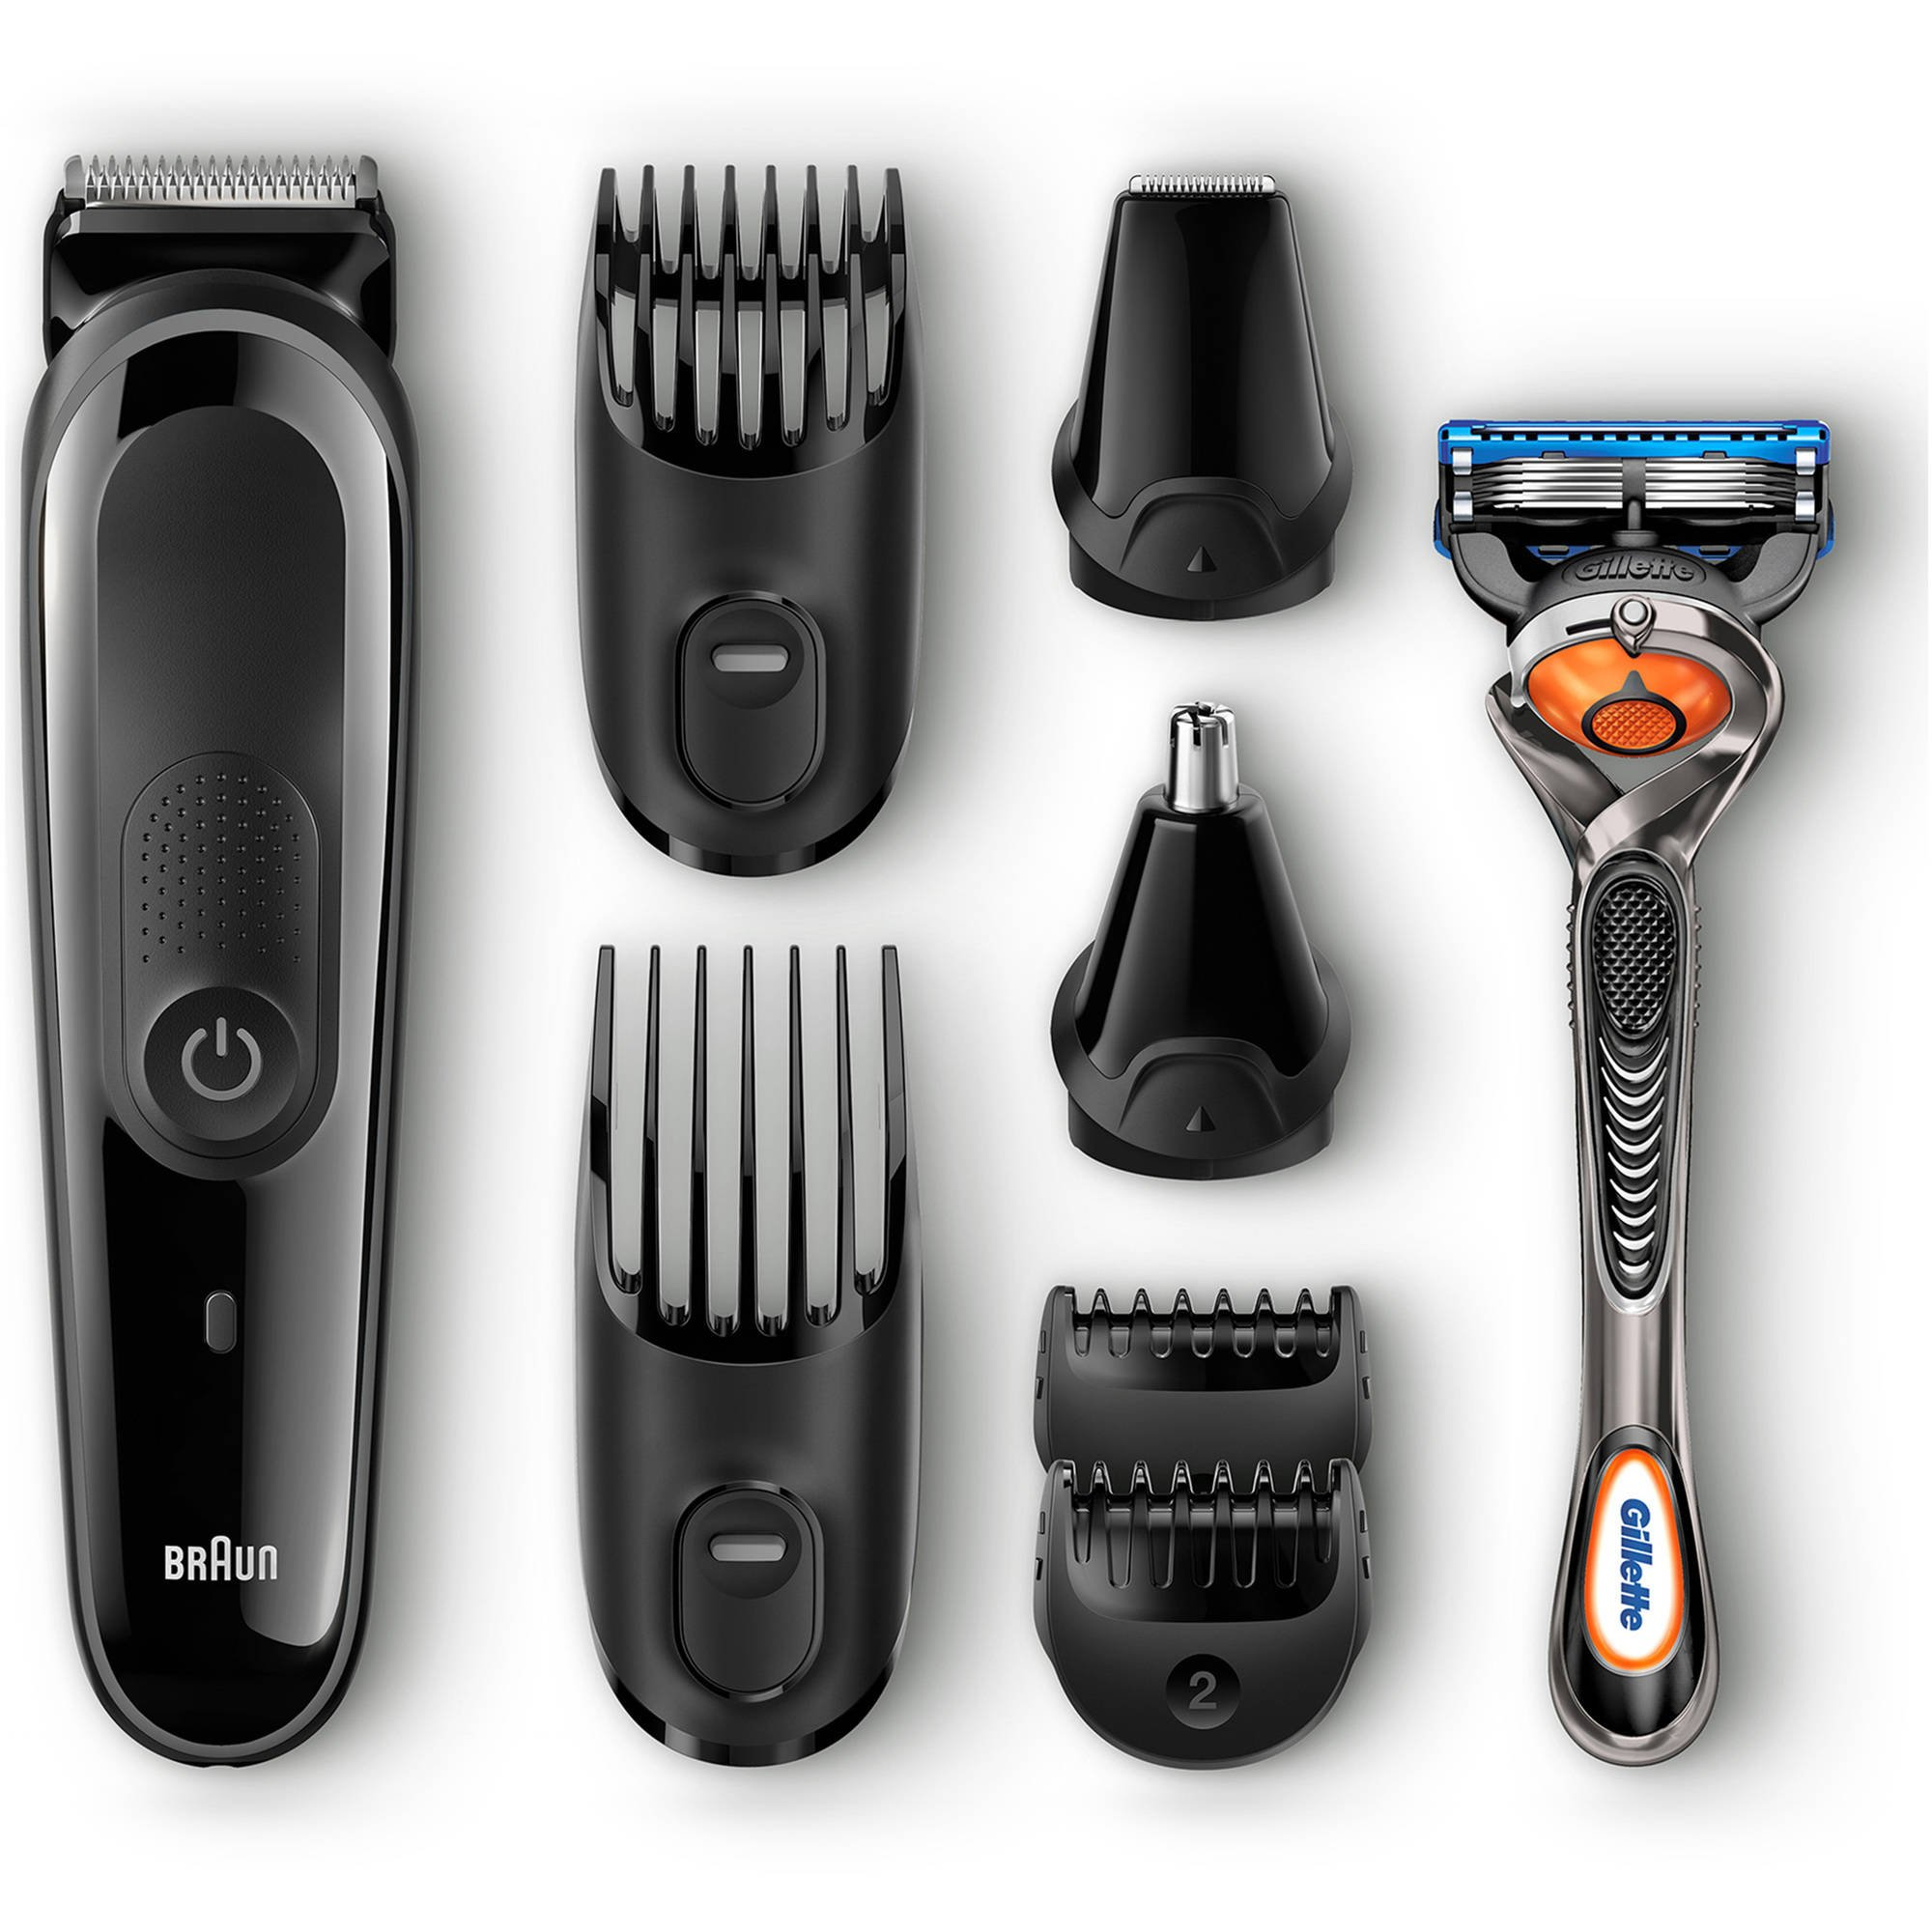 Braun 7-Piece Head and Face Trimming Grooming Kit with Free Gillette Razor